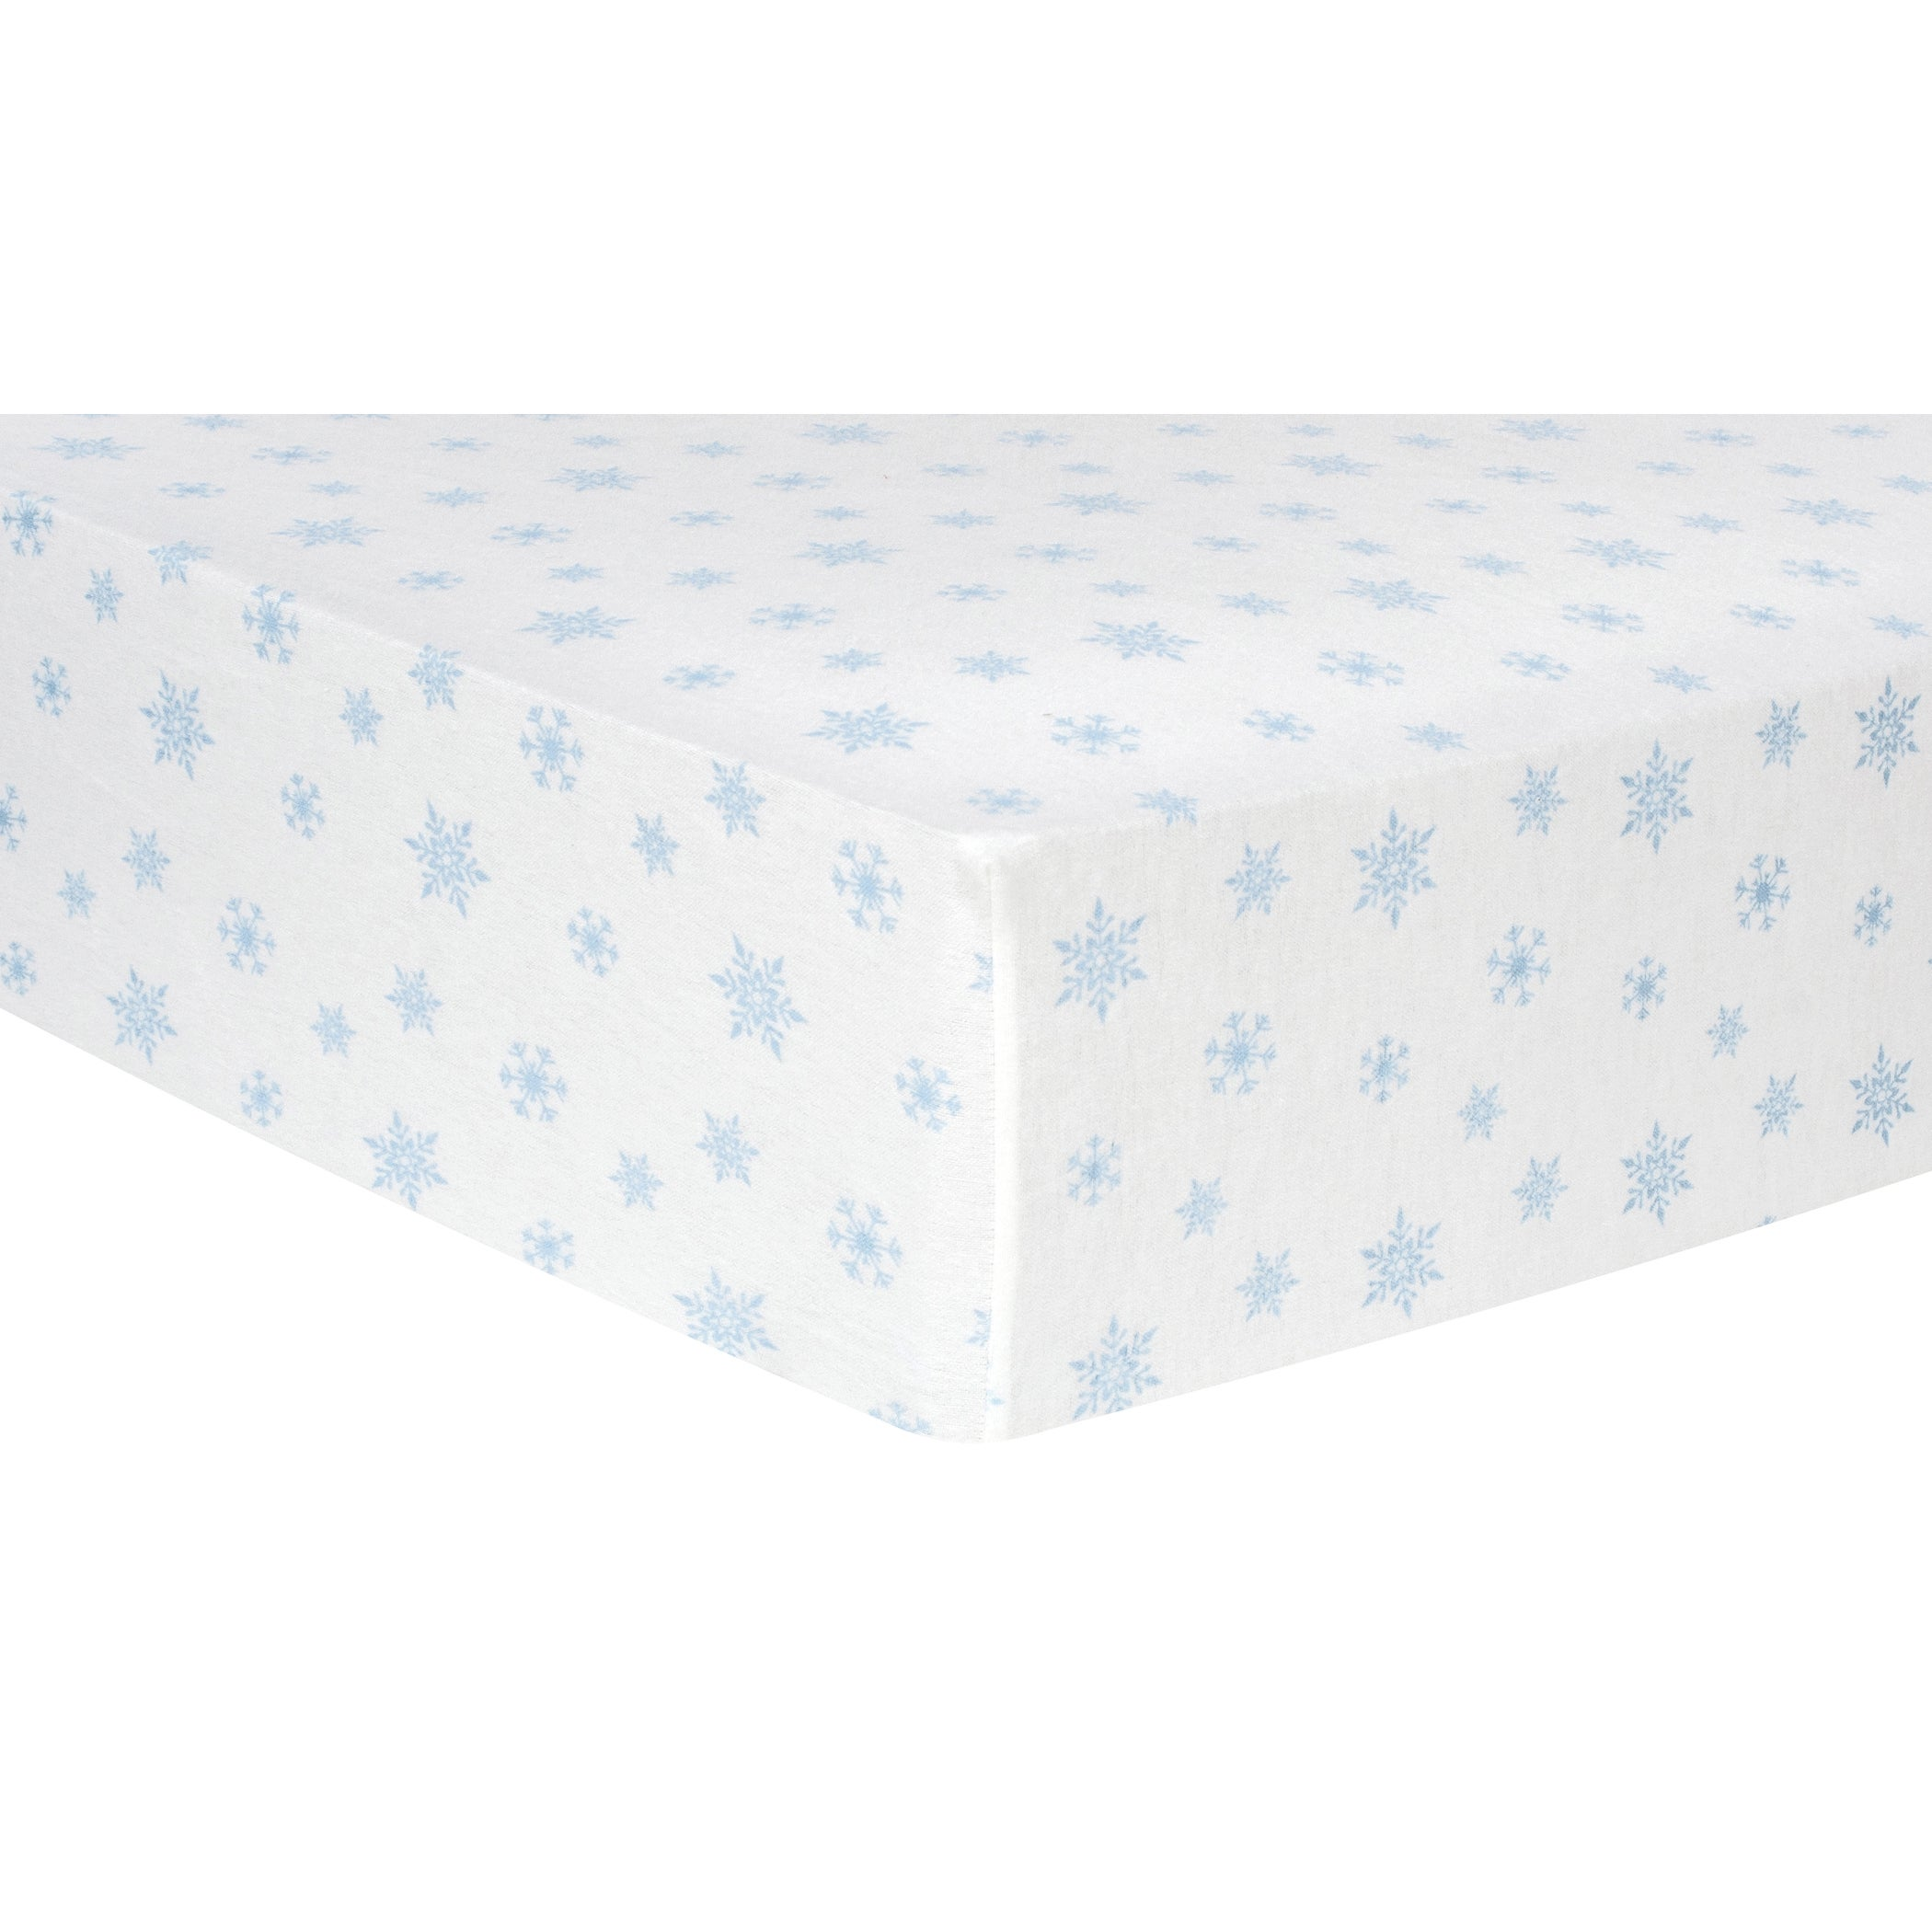 Trend Lab Blue Snowflakes Deluxe Flannel Fitted Crib Shee...